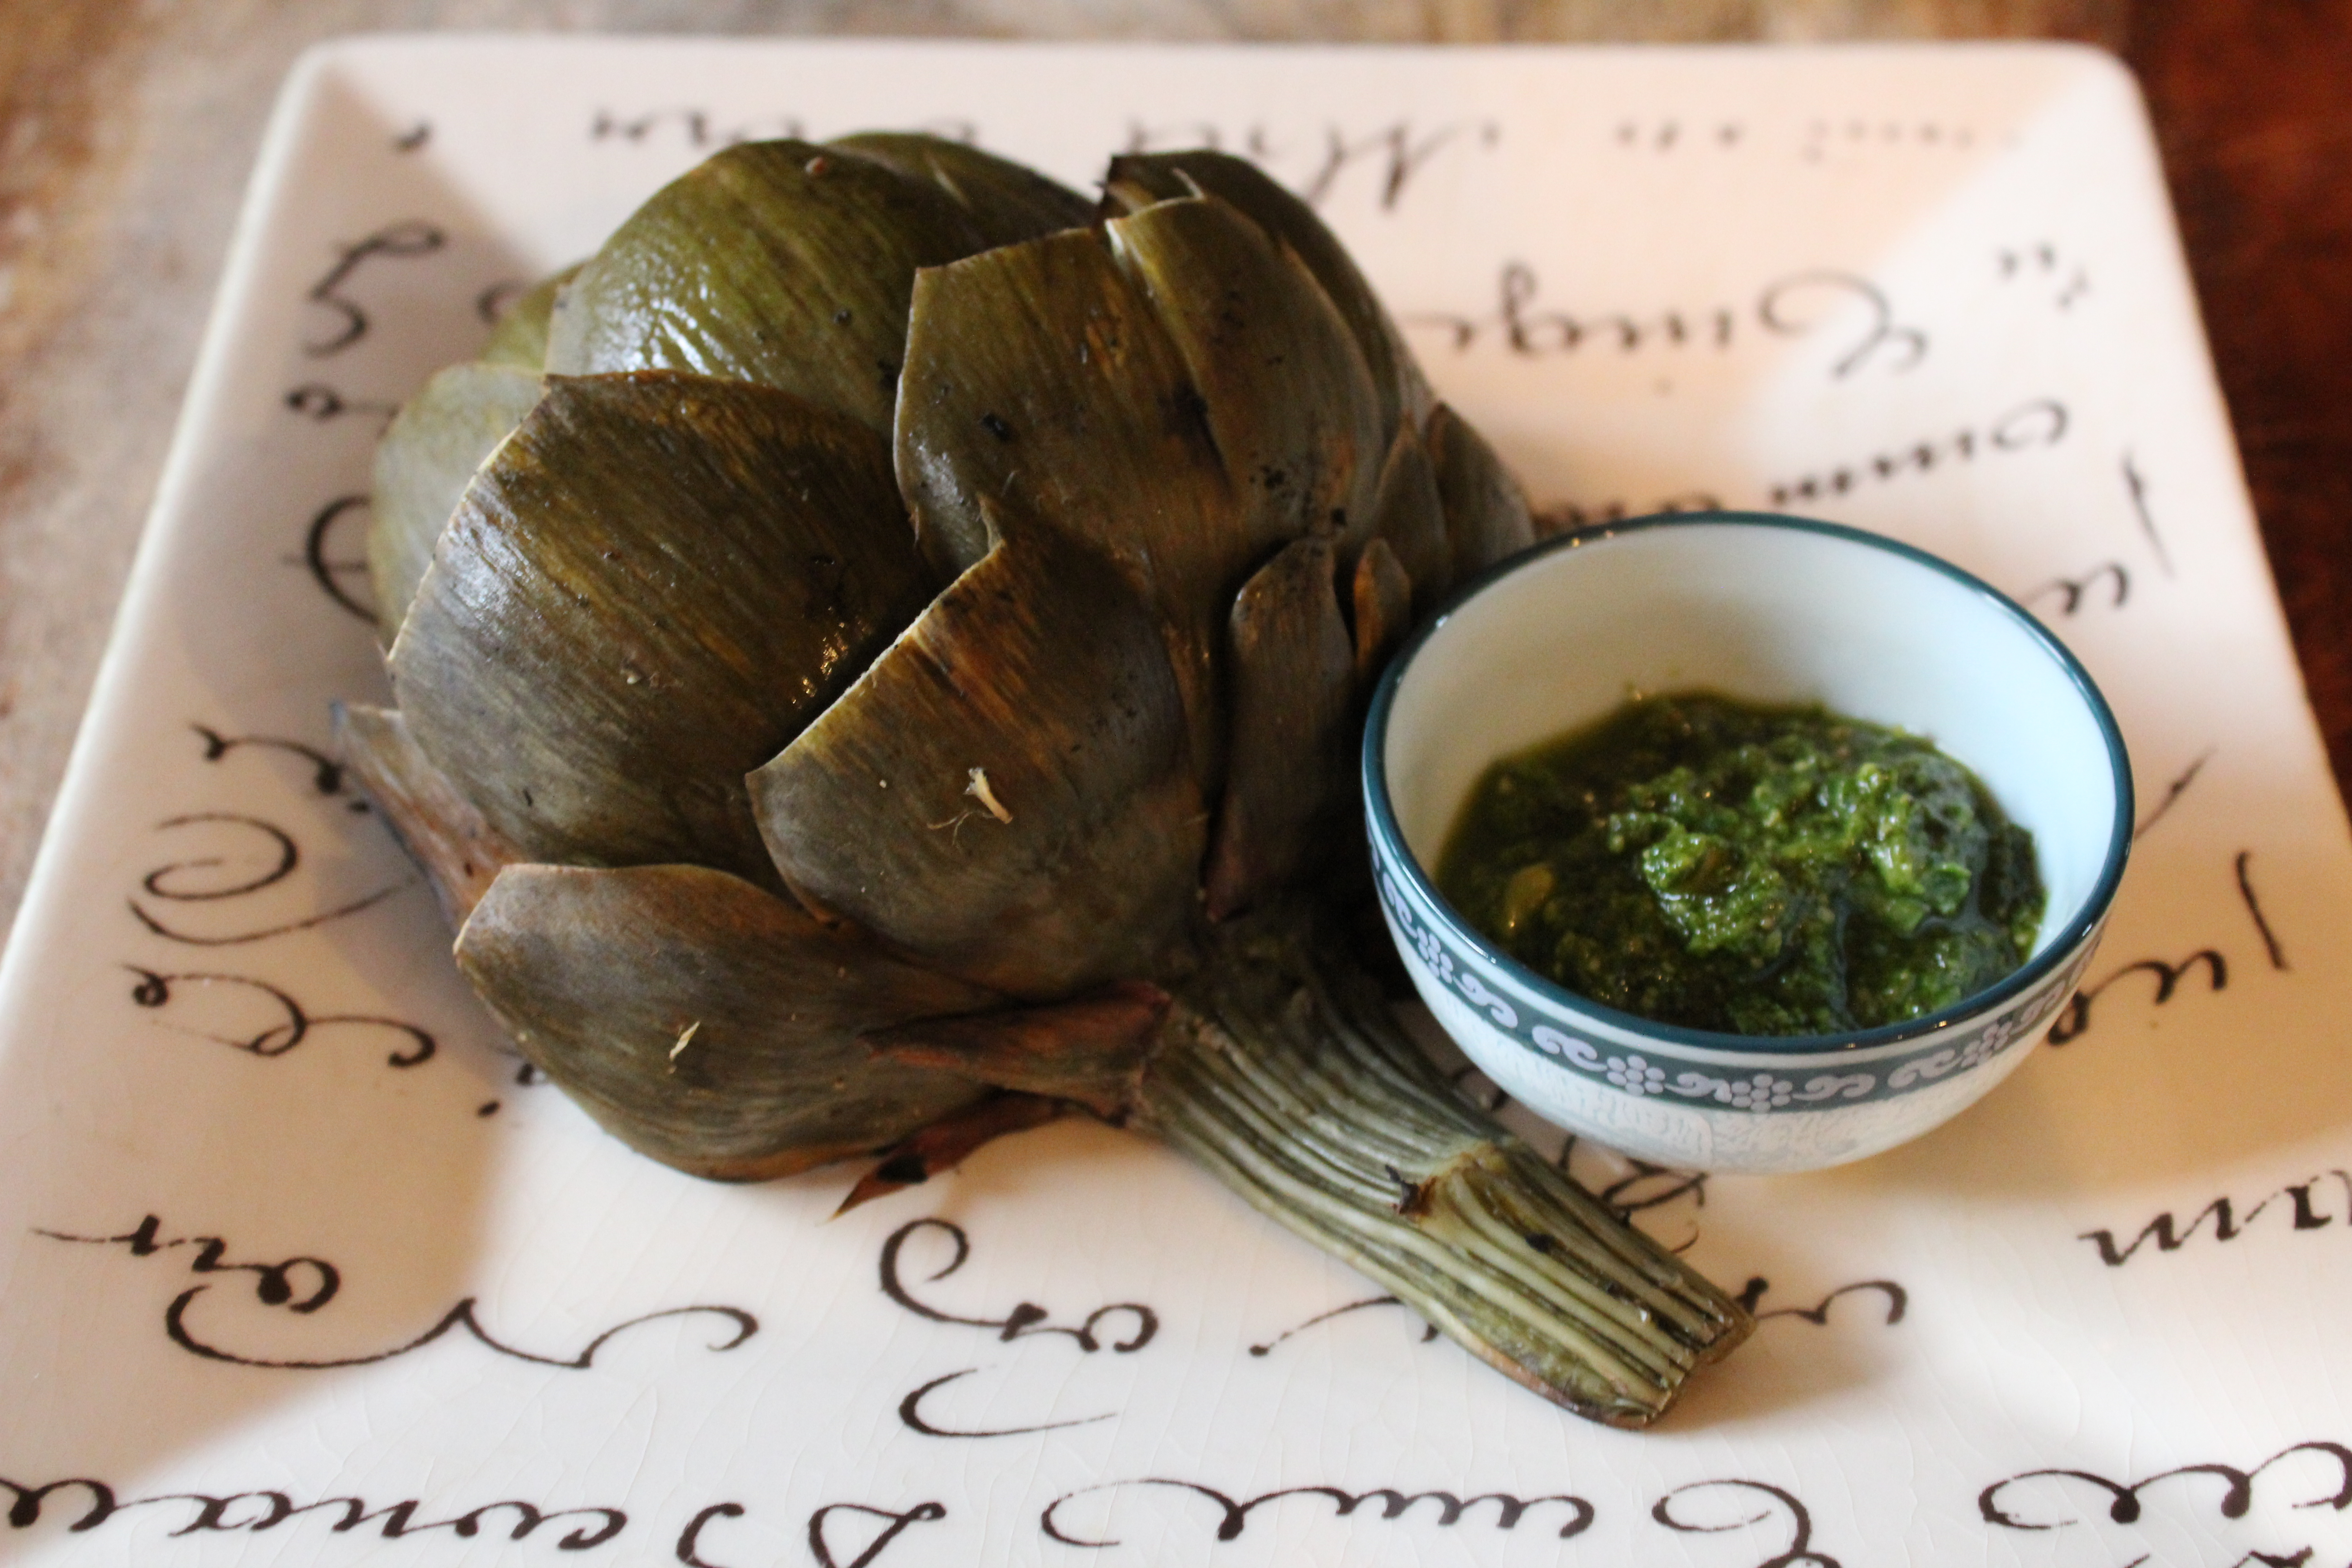 Grilled Artichokes with Pesto